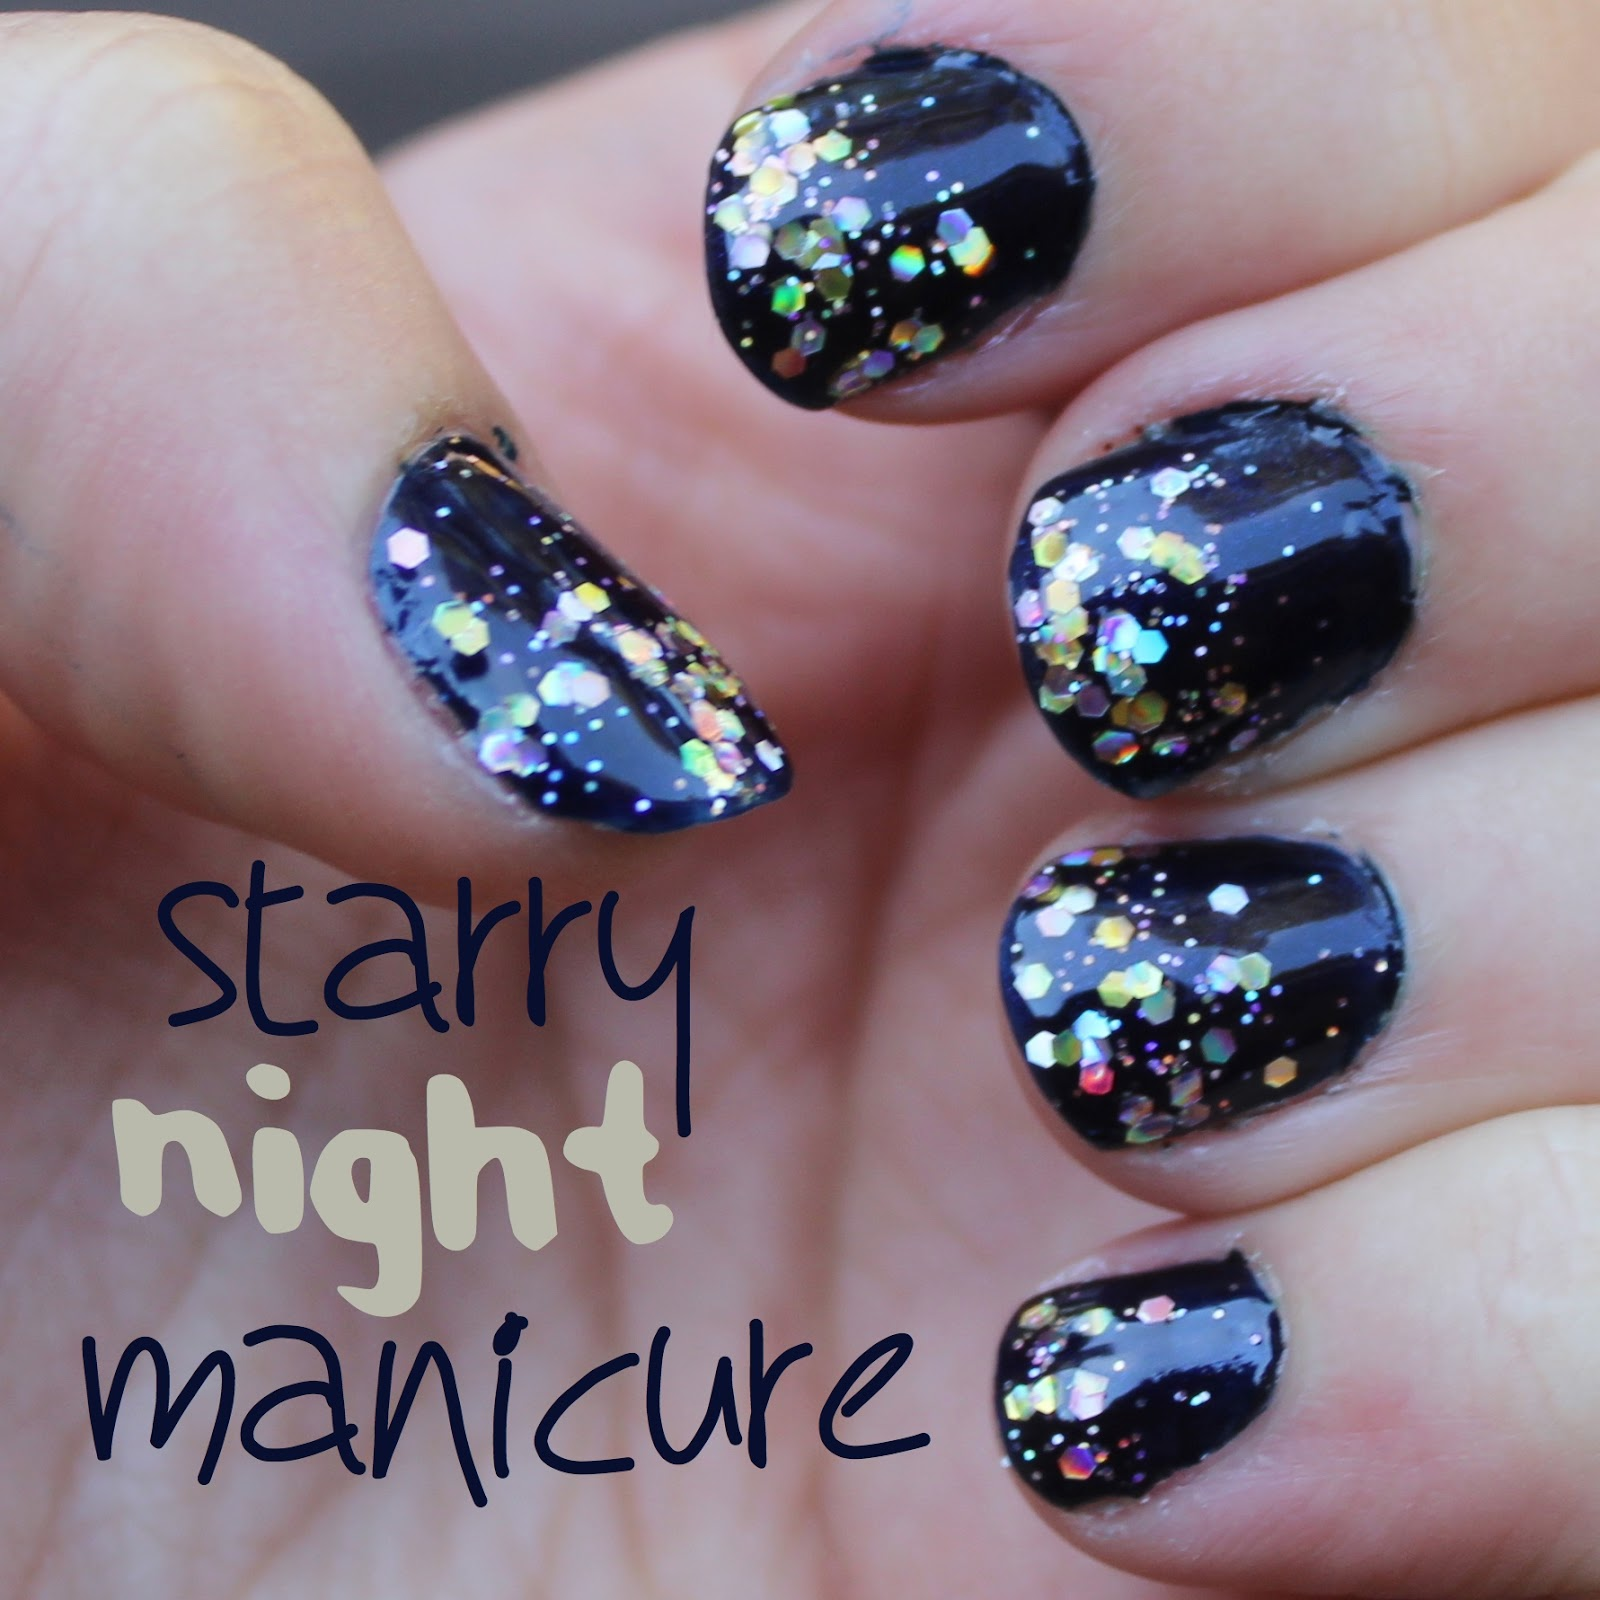 Starry Night Manicure - White Lights on Wednesday